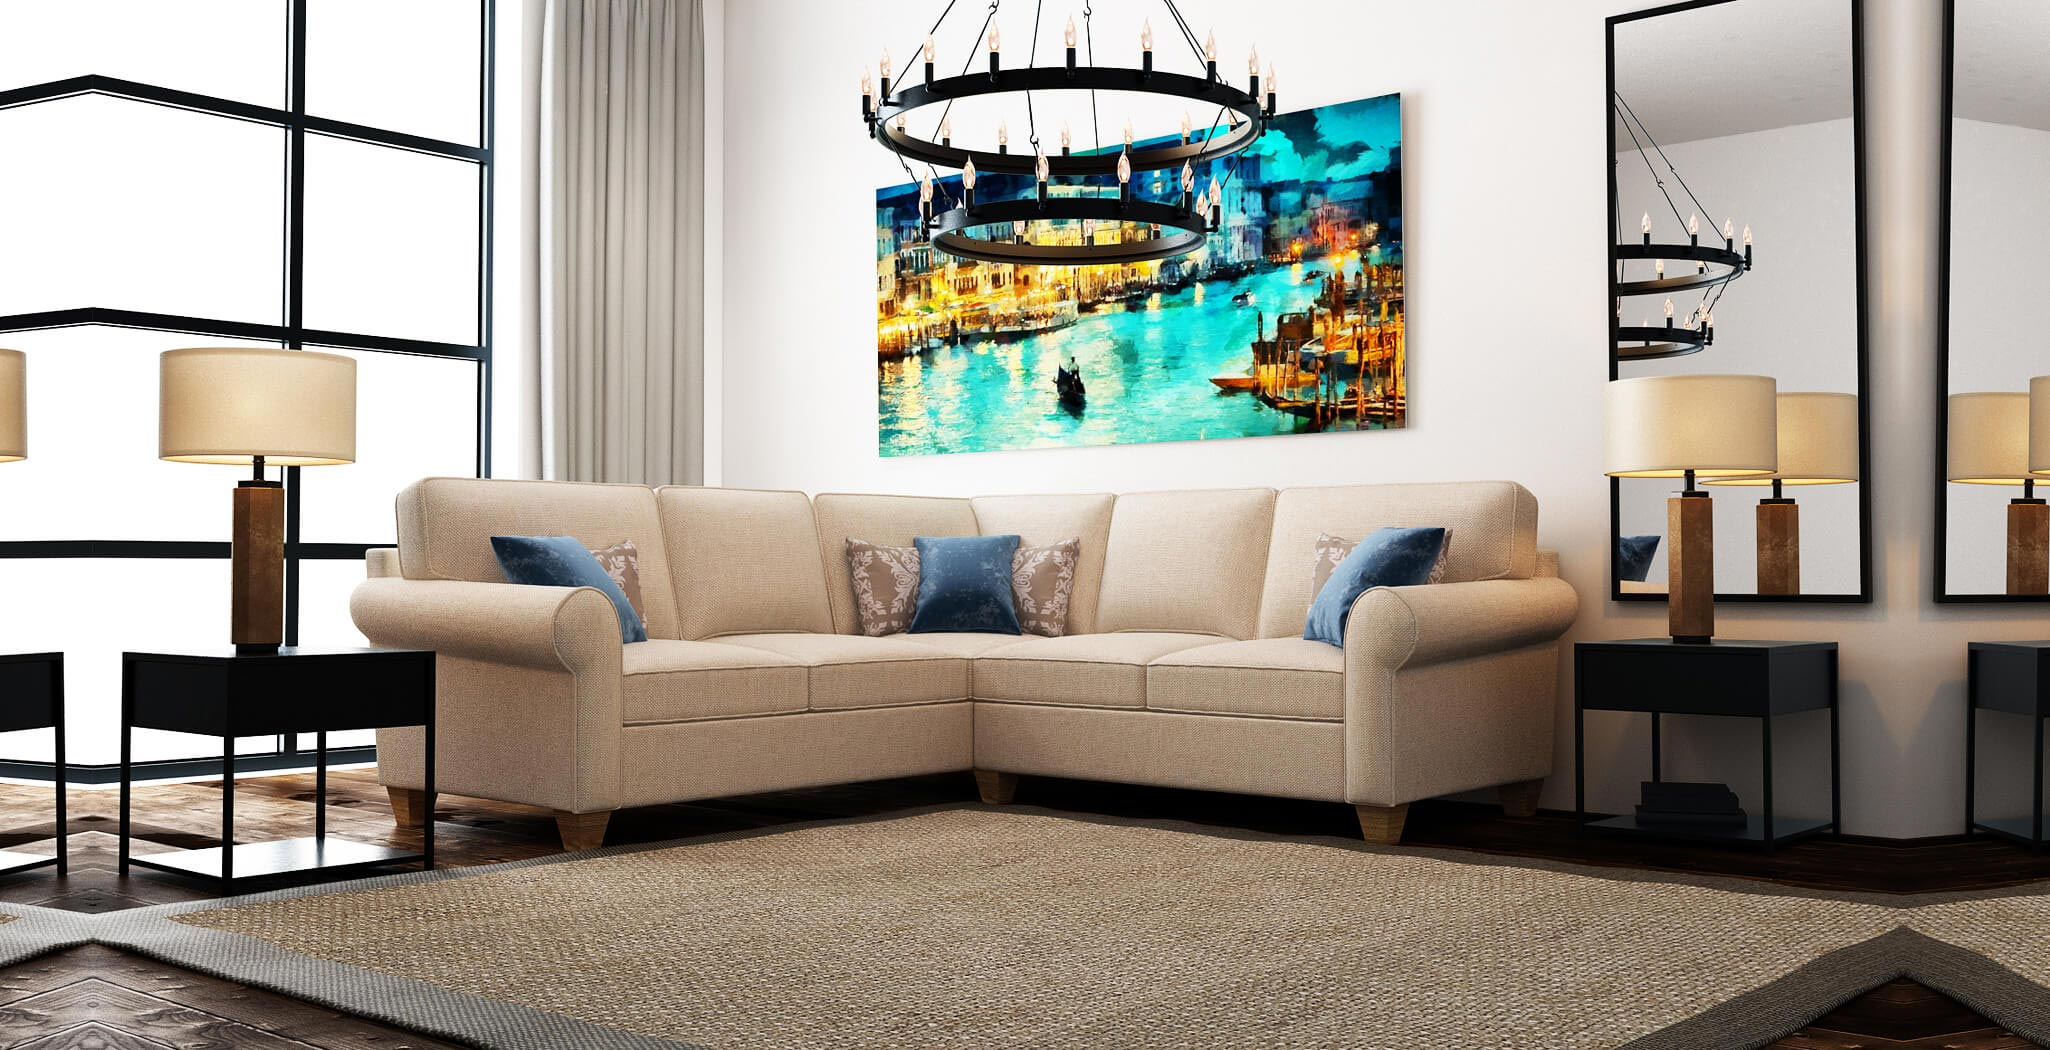 augusta sectional furniture gallery 1